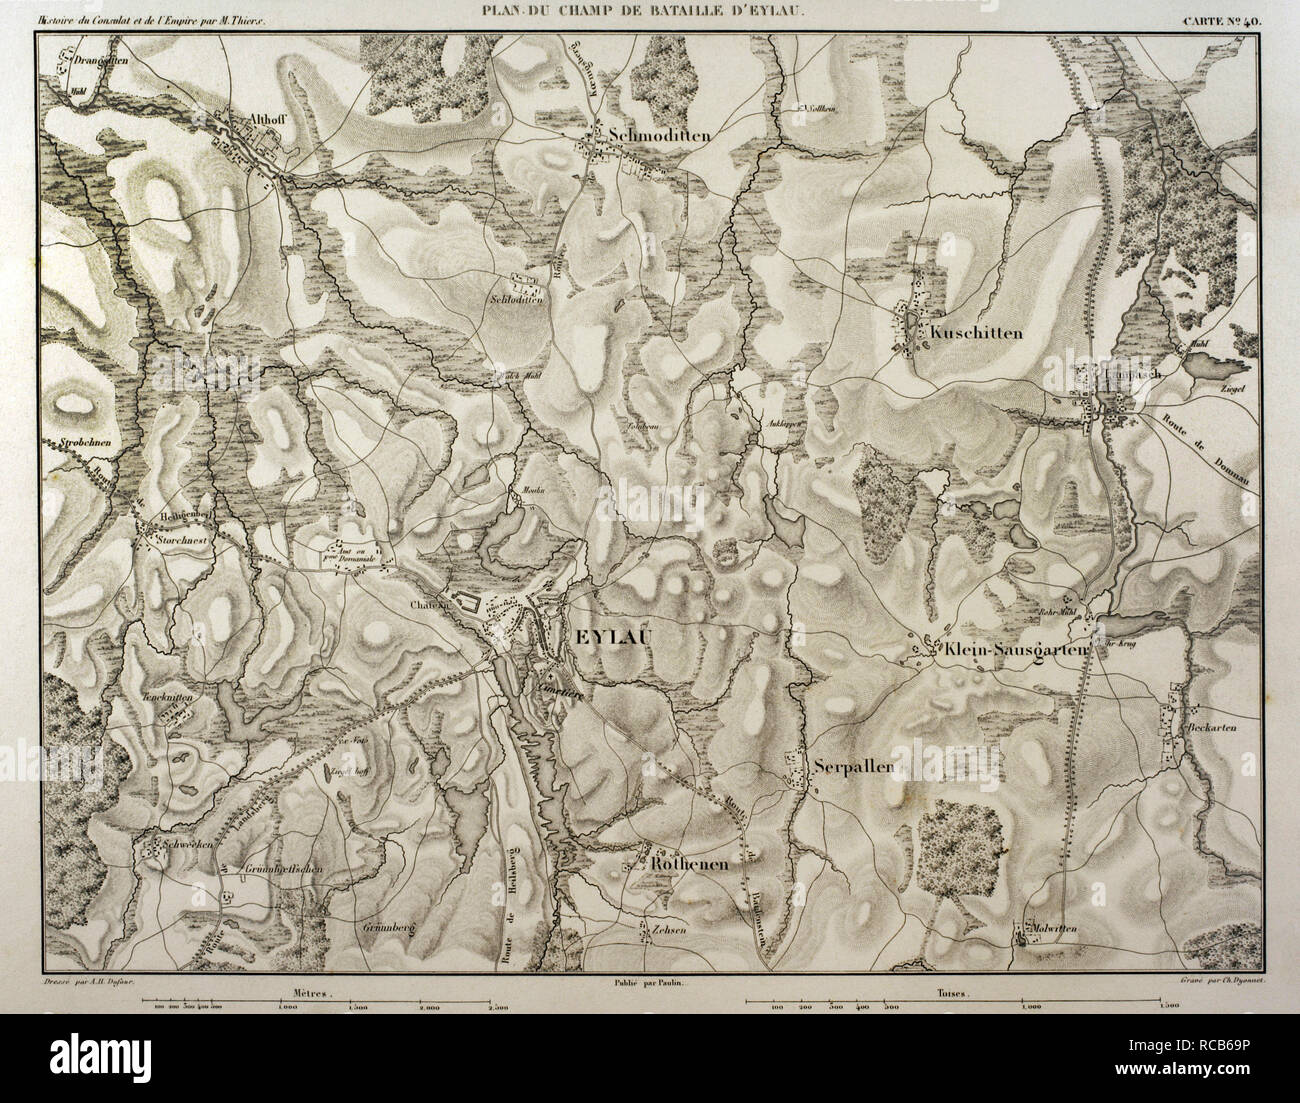 Map of battlefield of Eylau  (ancient Prussian now Russia). 7th and 8 th February 1807. Belligerents: French Empire and Russian Empire. It was a part of the War of the Fourth Coalition, in the context of Napoleonic Wars. Atlas de l'Histoire du Consulat et de l'Empire. History of the Consulate and the Empire of France under Napoleon by Marie Joseph Louis Adolphe Thiers (1797-1877). Drawings by Dufour, engravings by Dyonnet. Edited in Paris, 1864. - Stock Image